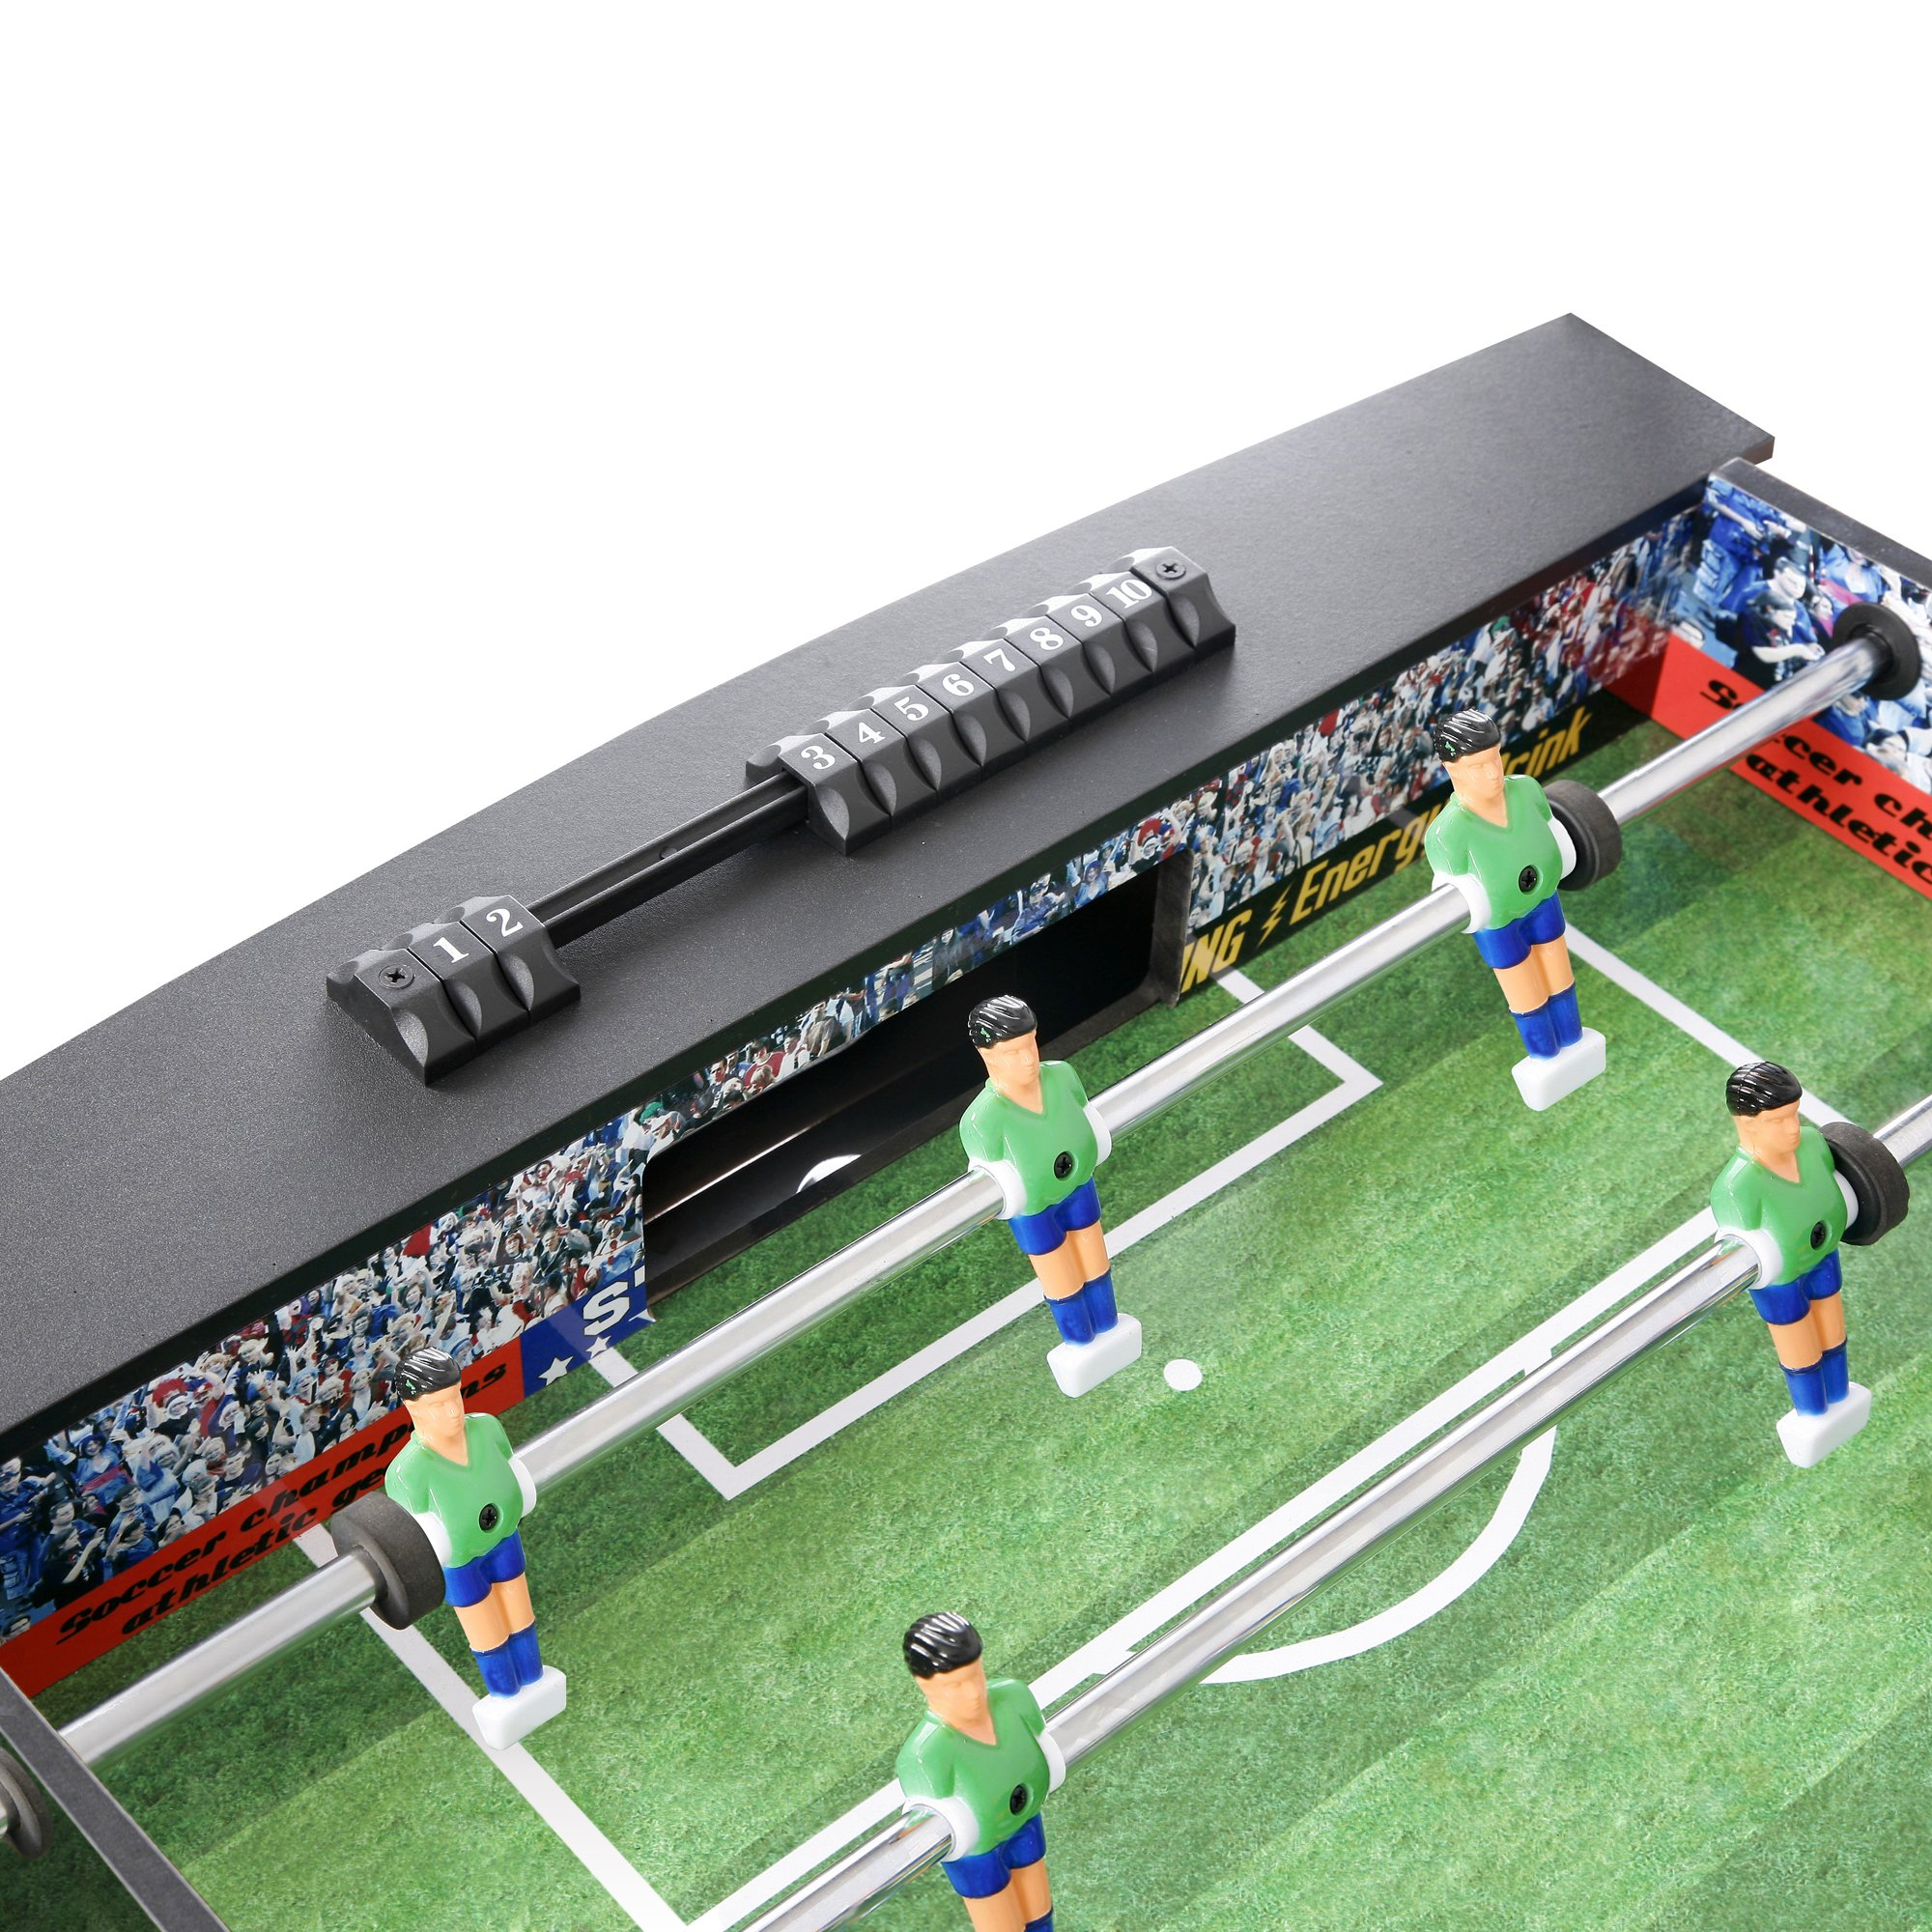 Hathaway Playoff 4 feet Foosball Table for Kids and Adults